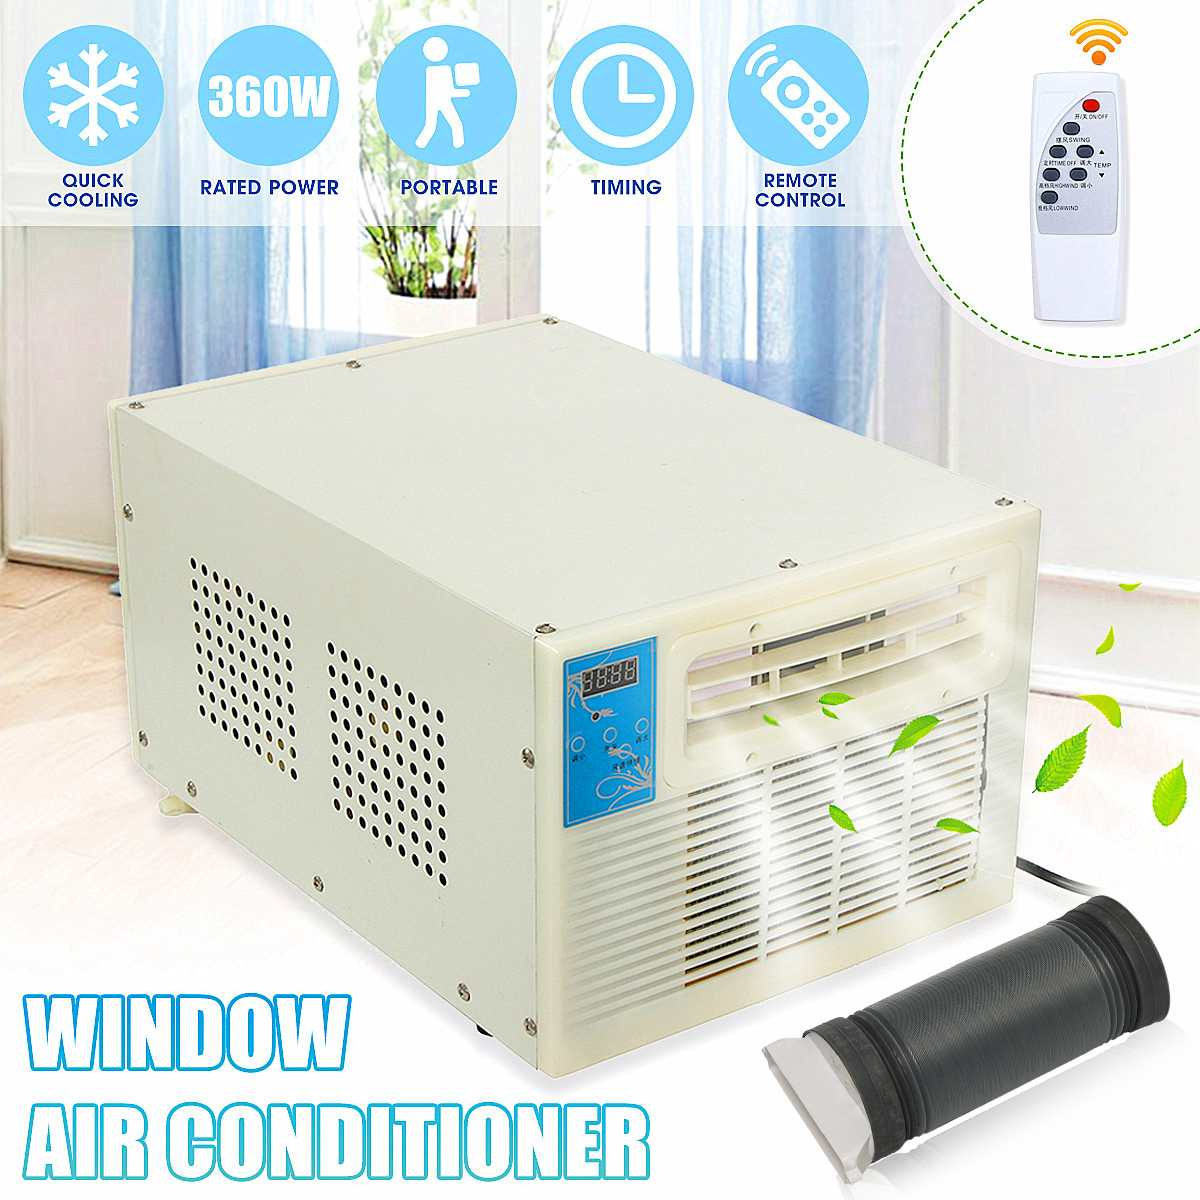 Newest 900W IPX4 Desktops Air Conditioner Window Air Conditioner Mini Household Air Cooler Air Conditioner With Remote Control